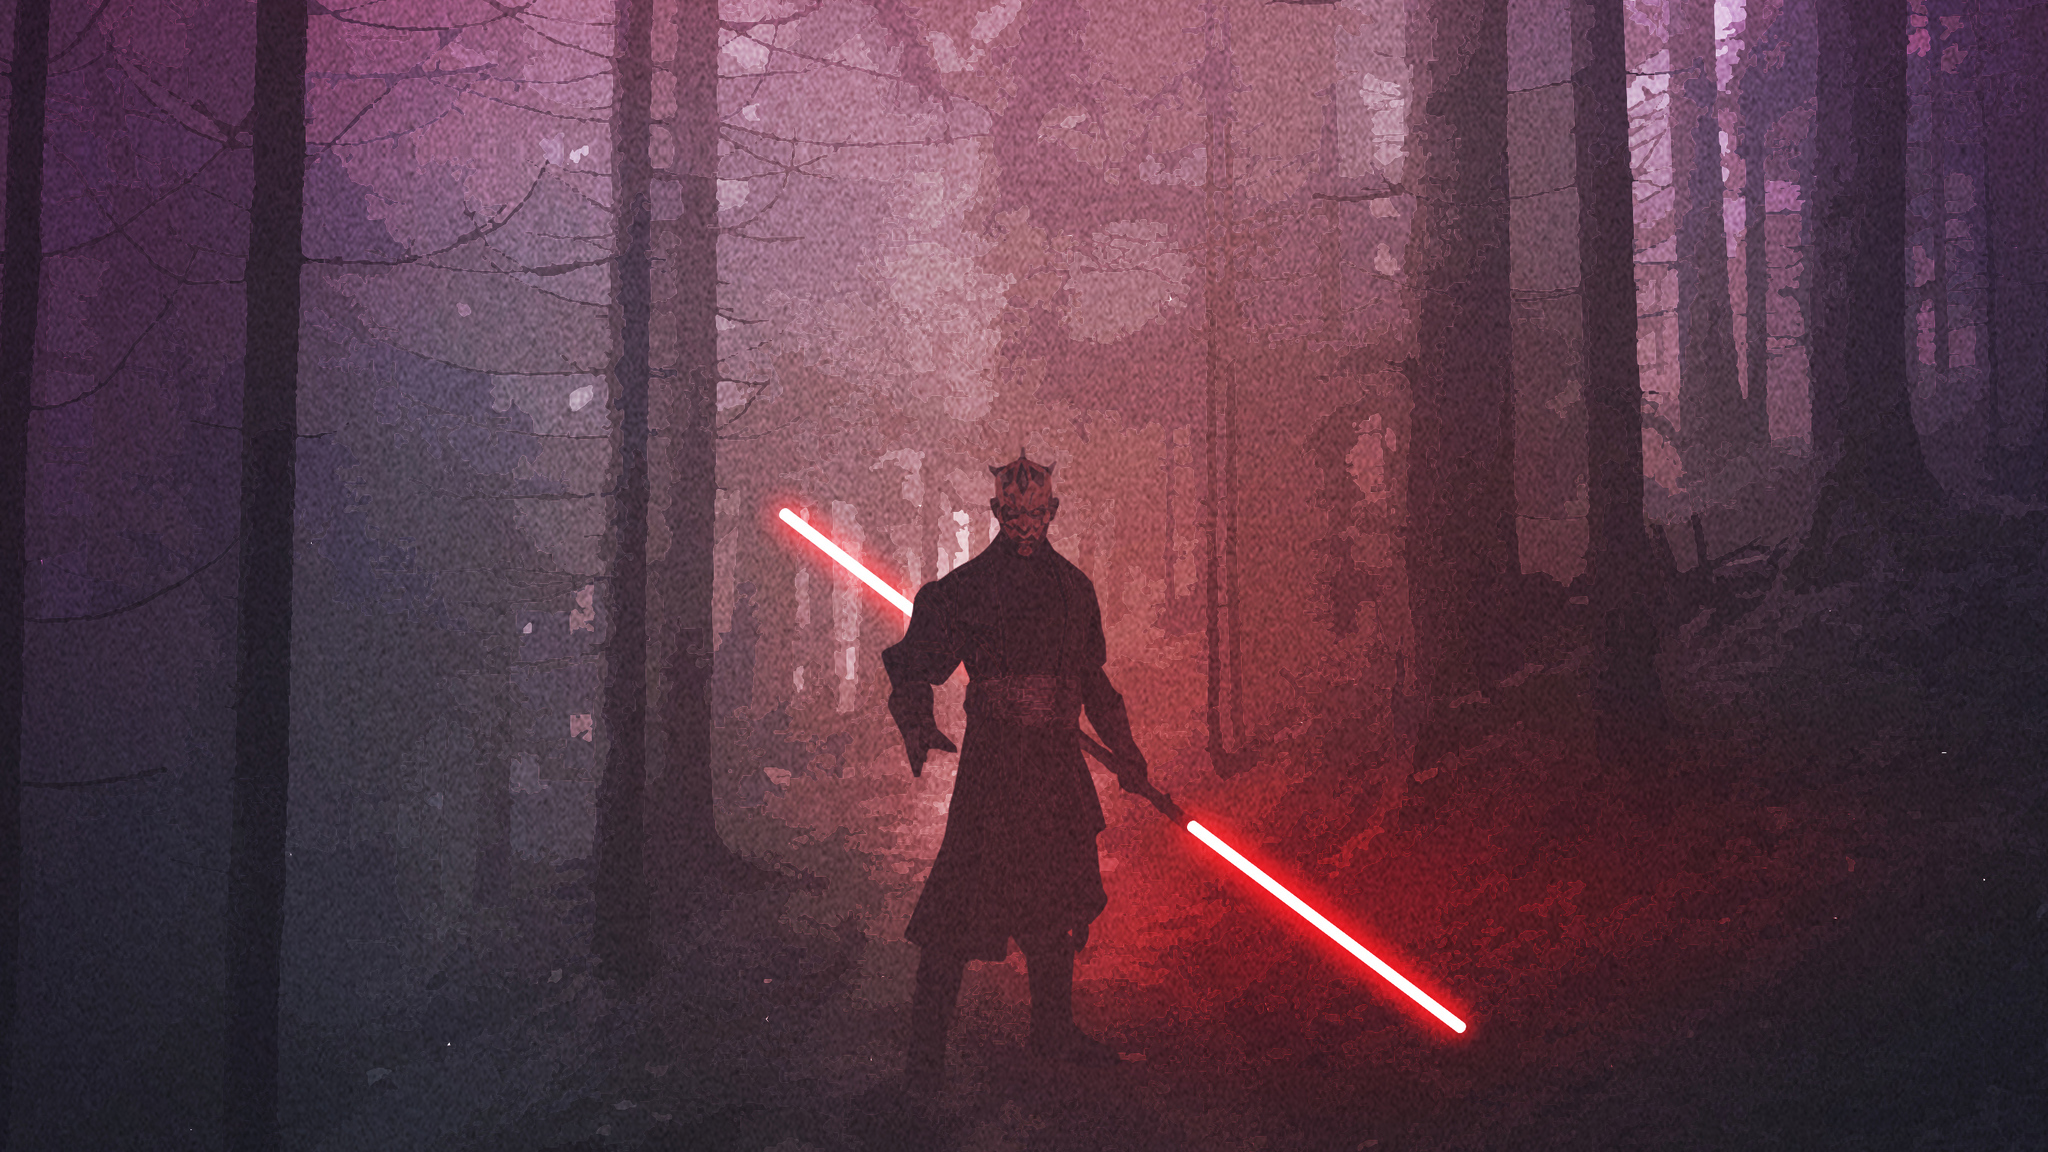 2048x1152 Darth Maul Star Wars Fanart 2048x1152 Resolution Hd 4k